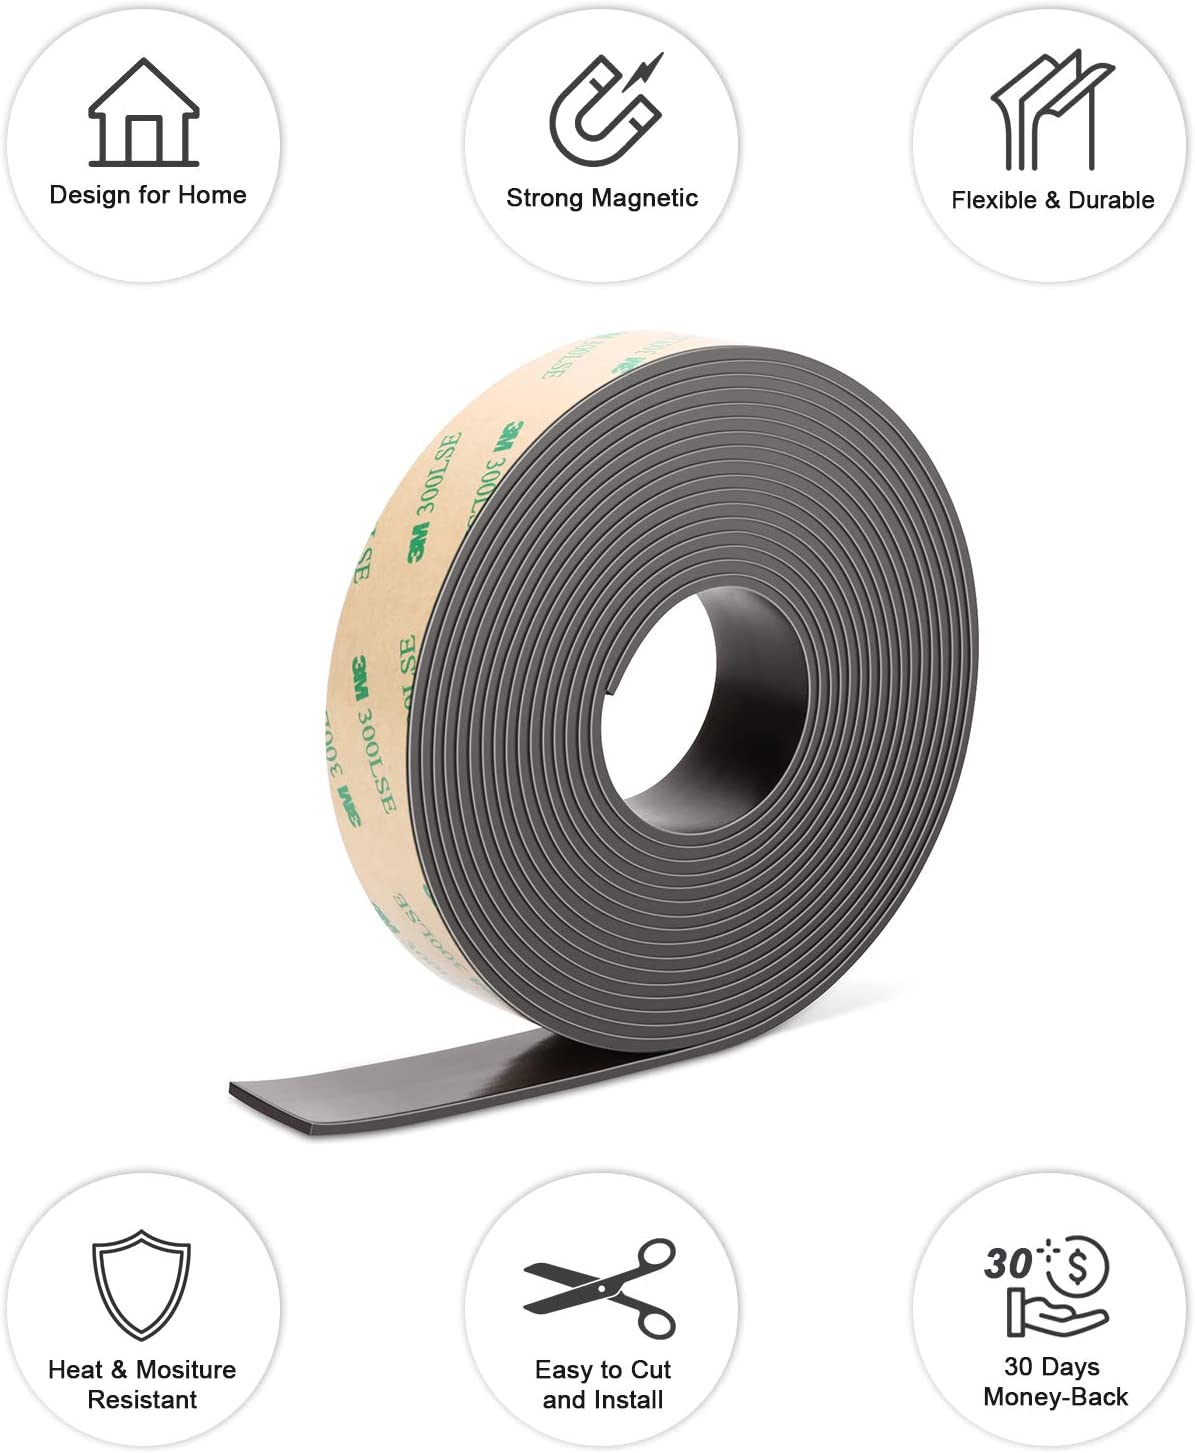 Sticky Magnetic Roll Perfect for Fridge. Magcifly Magnetic Adhesive Tape 1 Inch X 15 Feet Magnetic Strip with Strong Adhesive for Craft /& DIY Projects